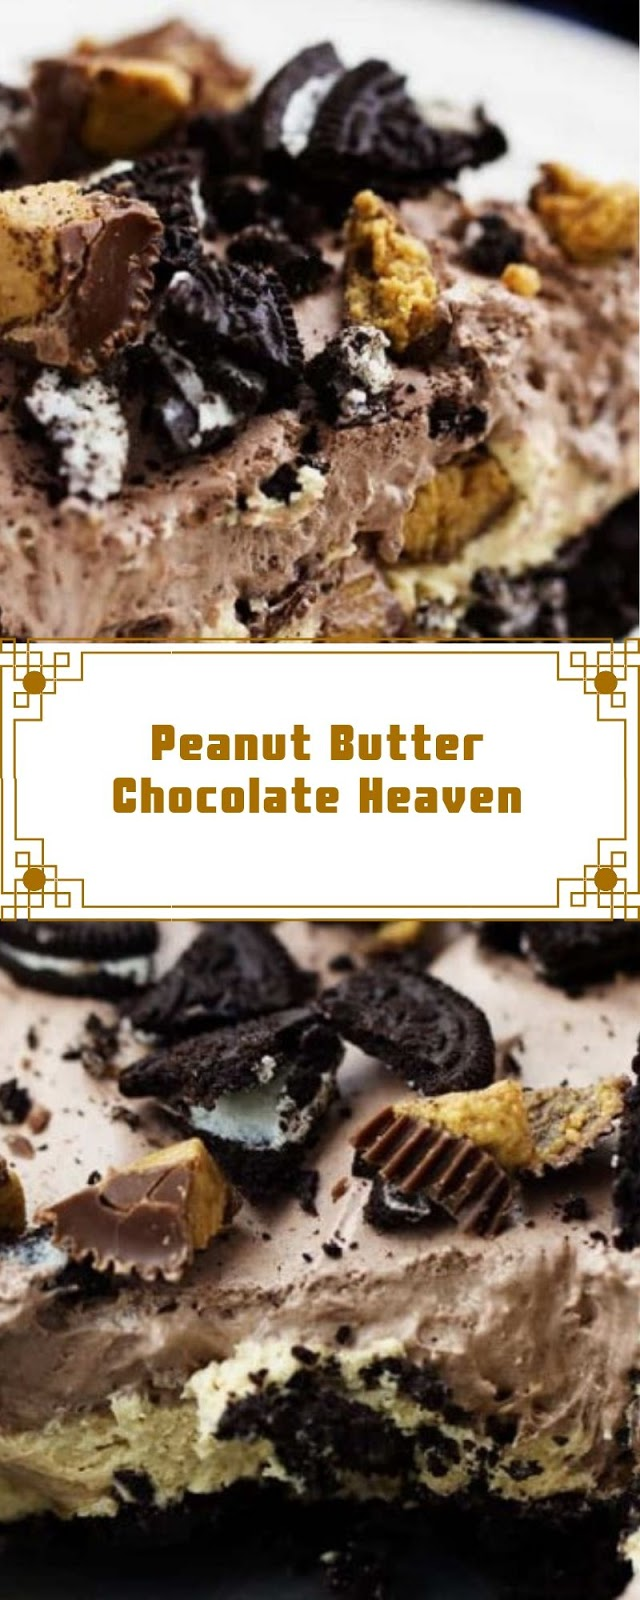 Peanut Butter Chocolate Heaven